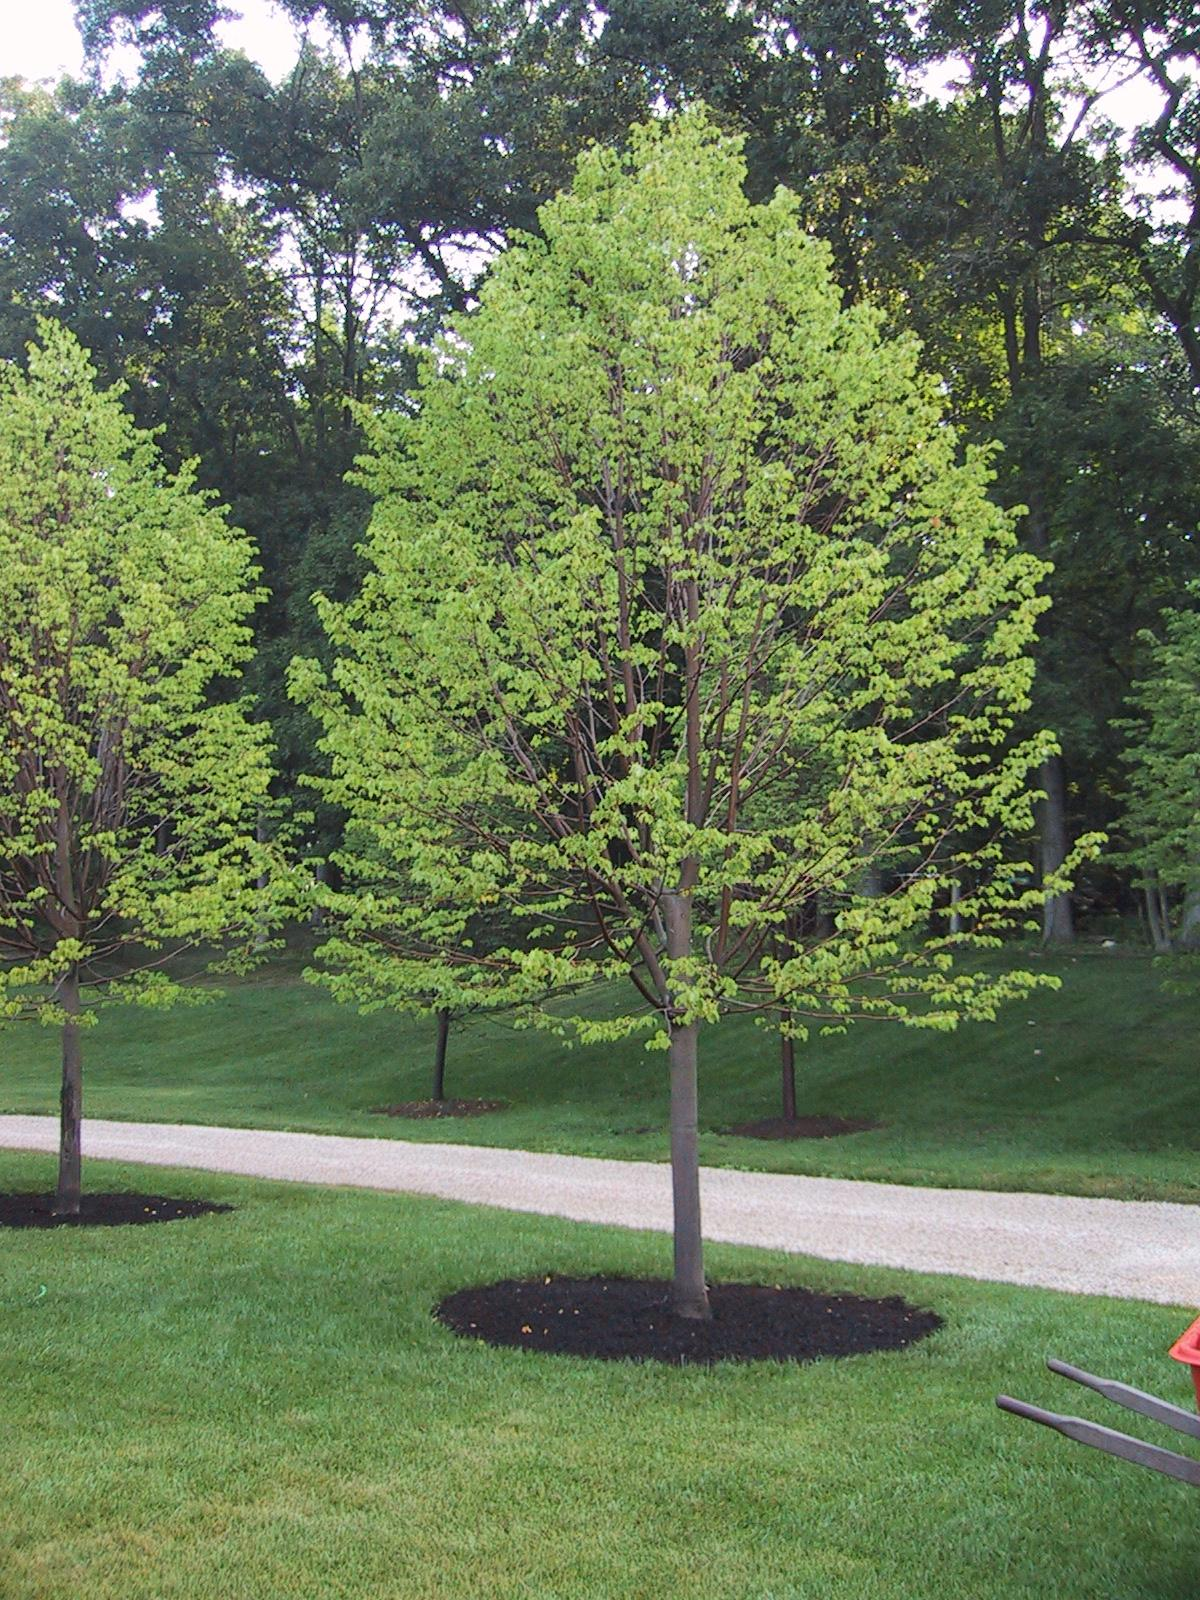 Mulching is a good tree care practice, when it is done correctly. The mulch well should be approximately the size of the tree drip line and not deeper than a few inches. Although we often see these 'm